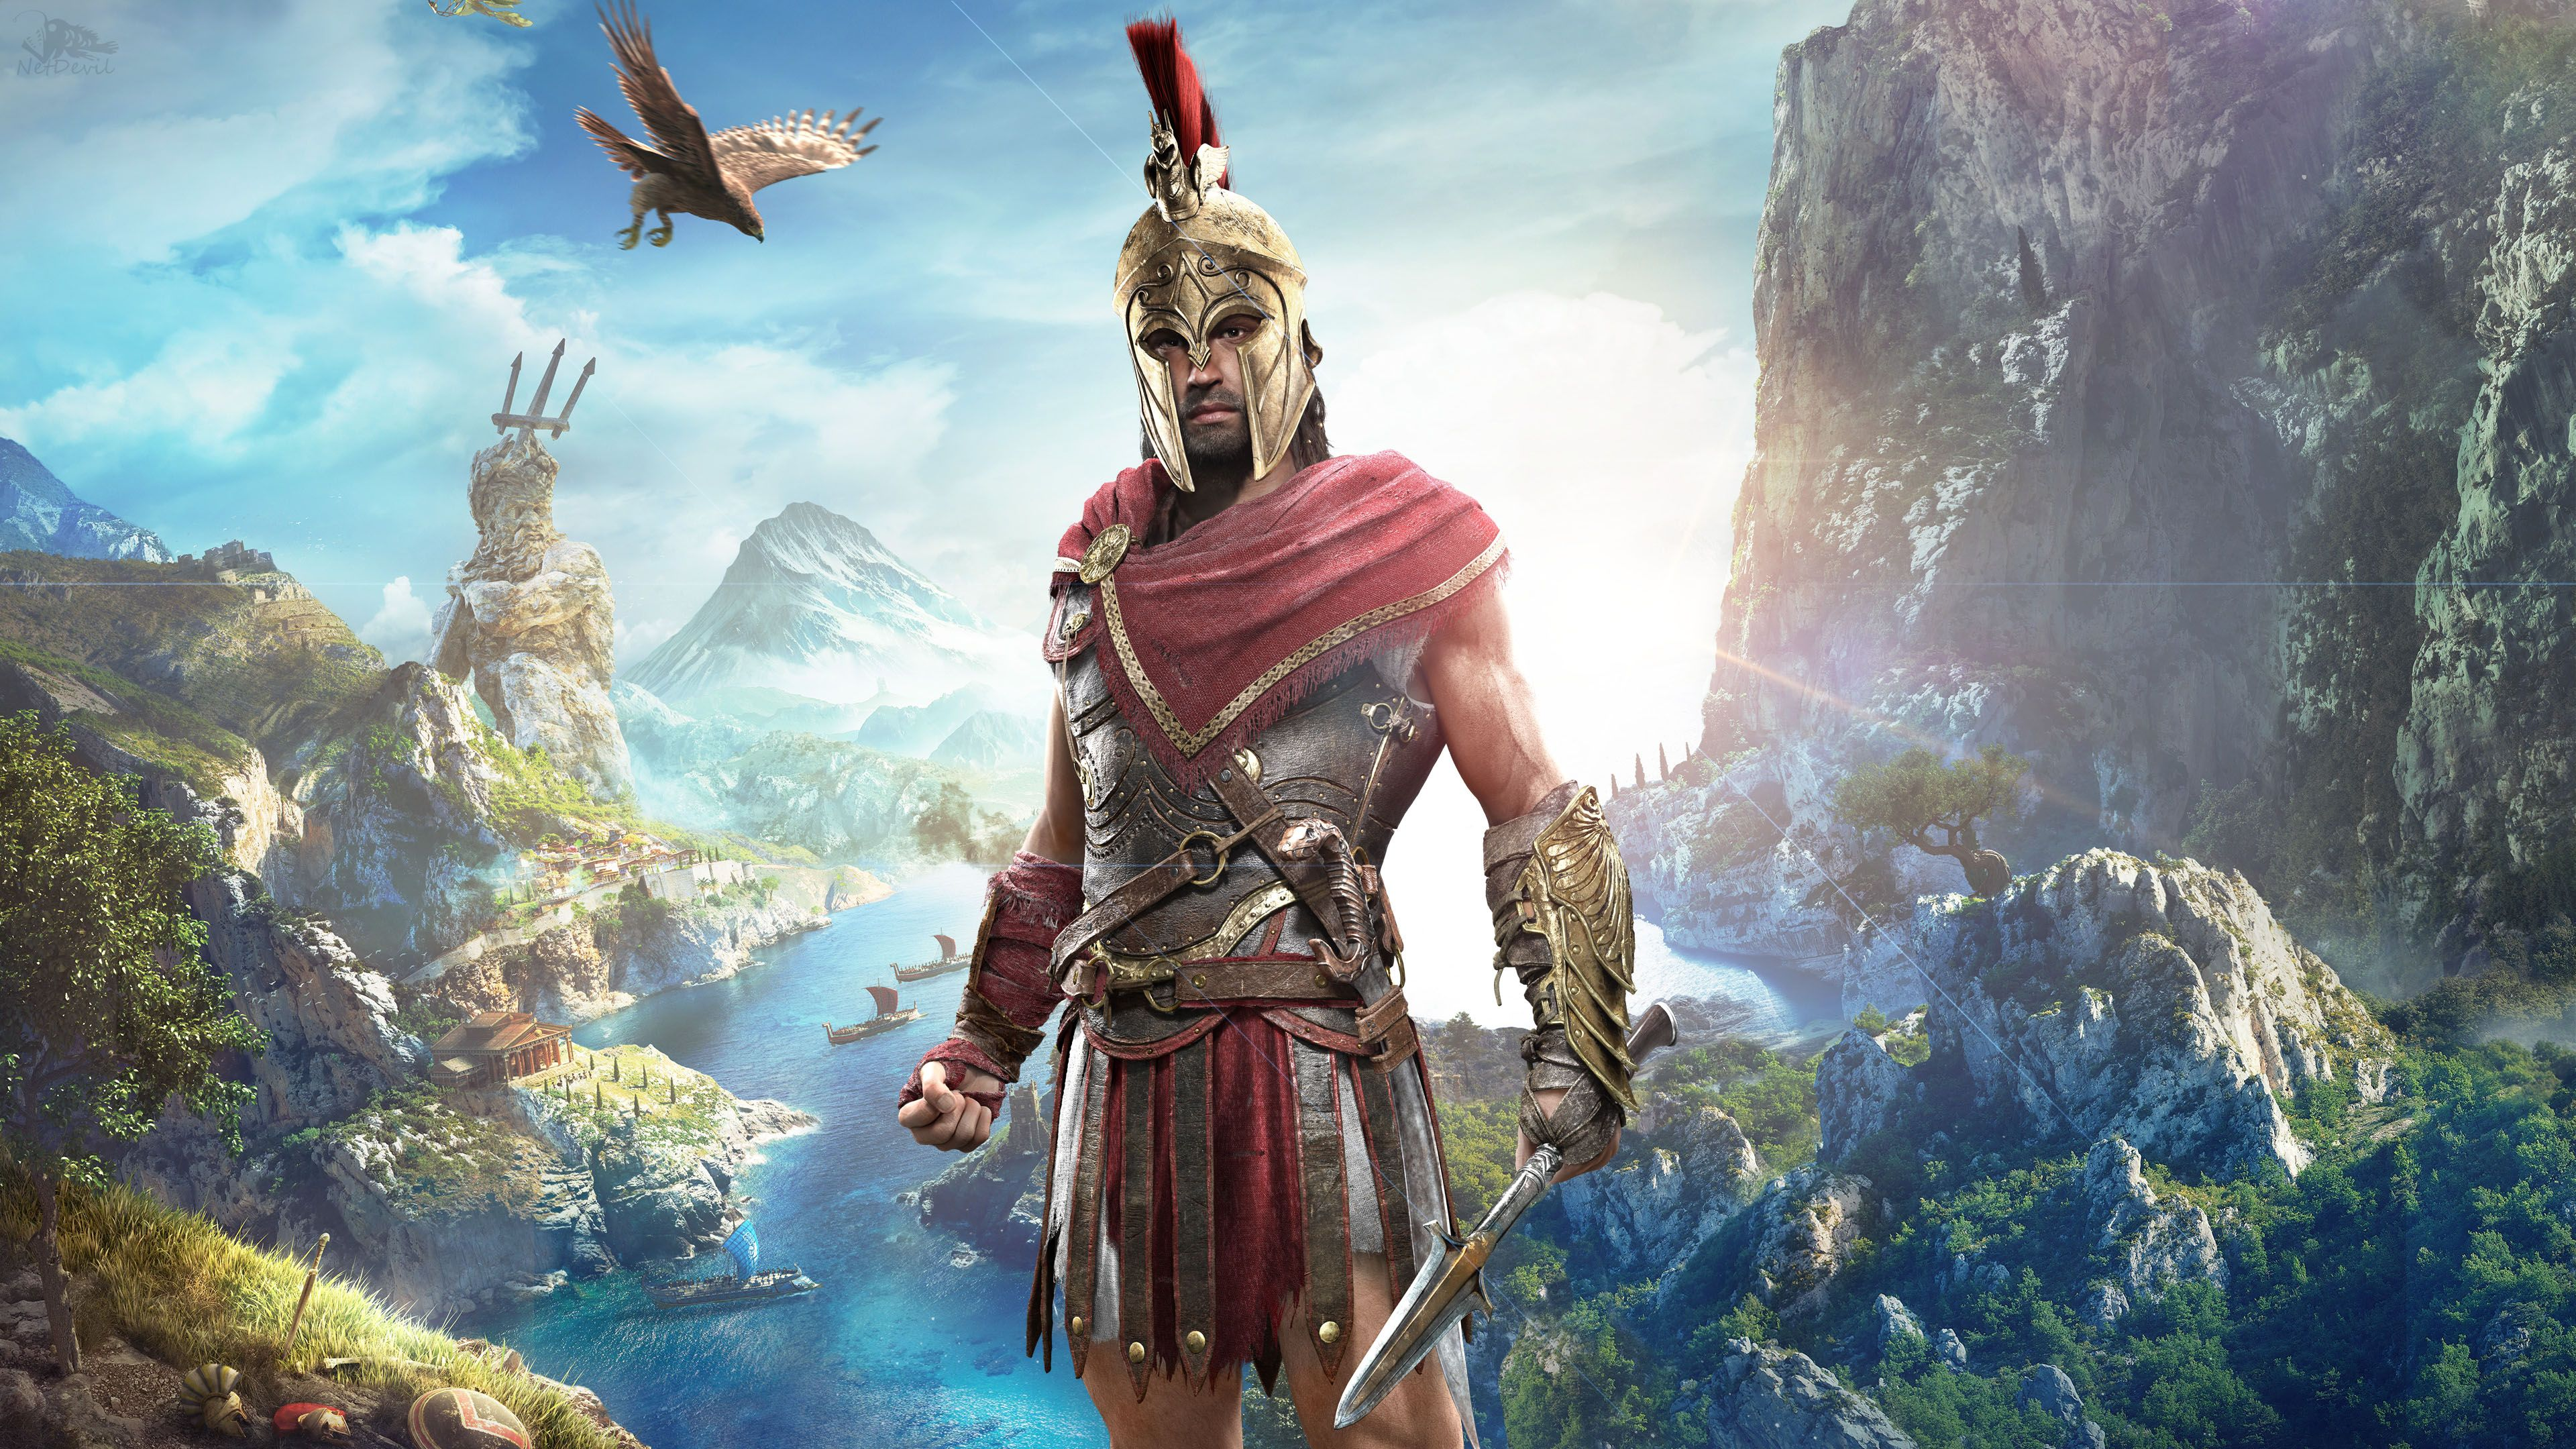 Alexios in Assassin's Creed Odyssey 4K Assassins creed